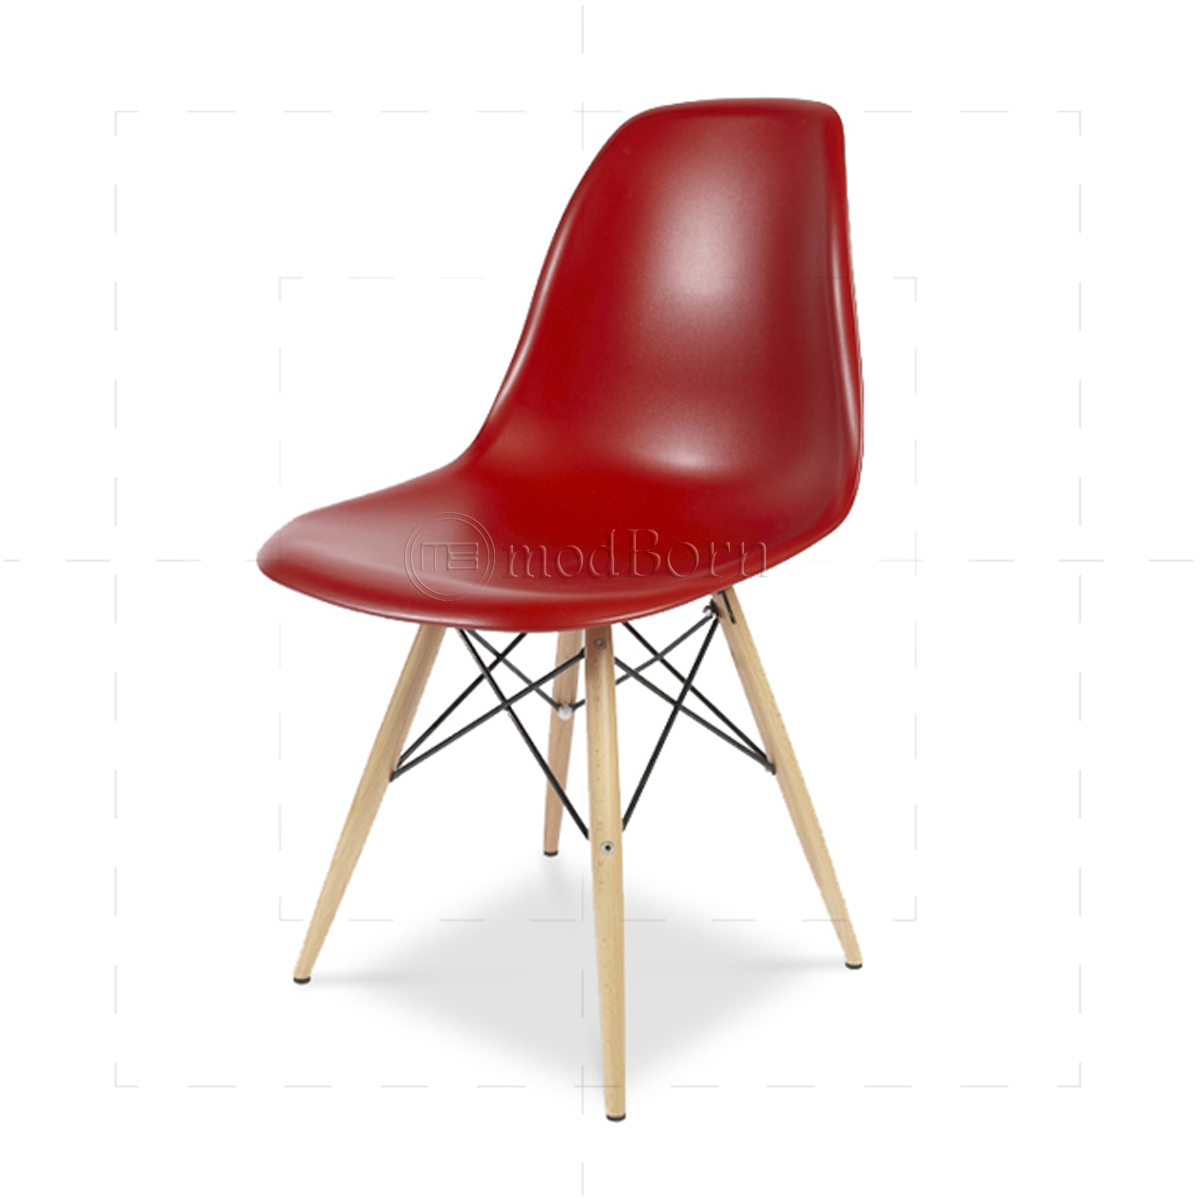 Eames style dining dsw chair red replica for Eames replica deutschland